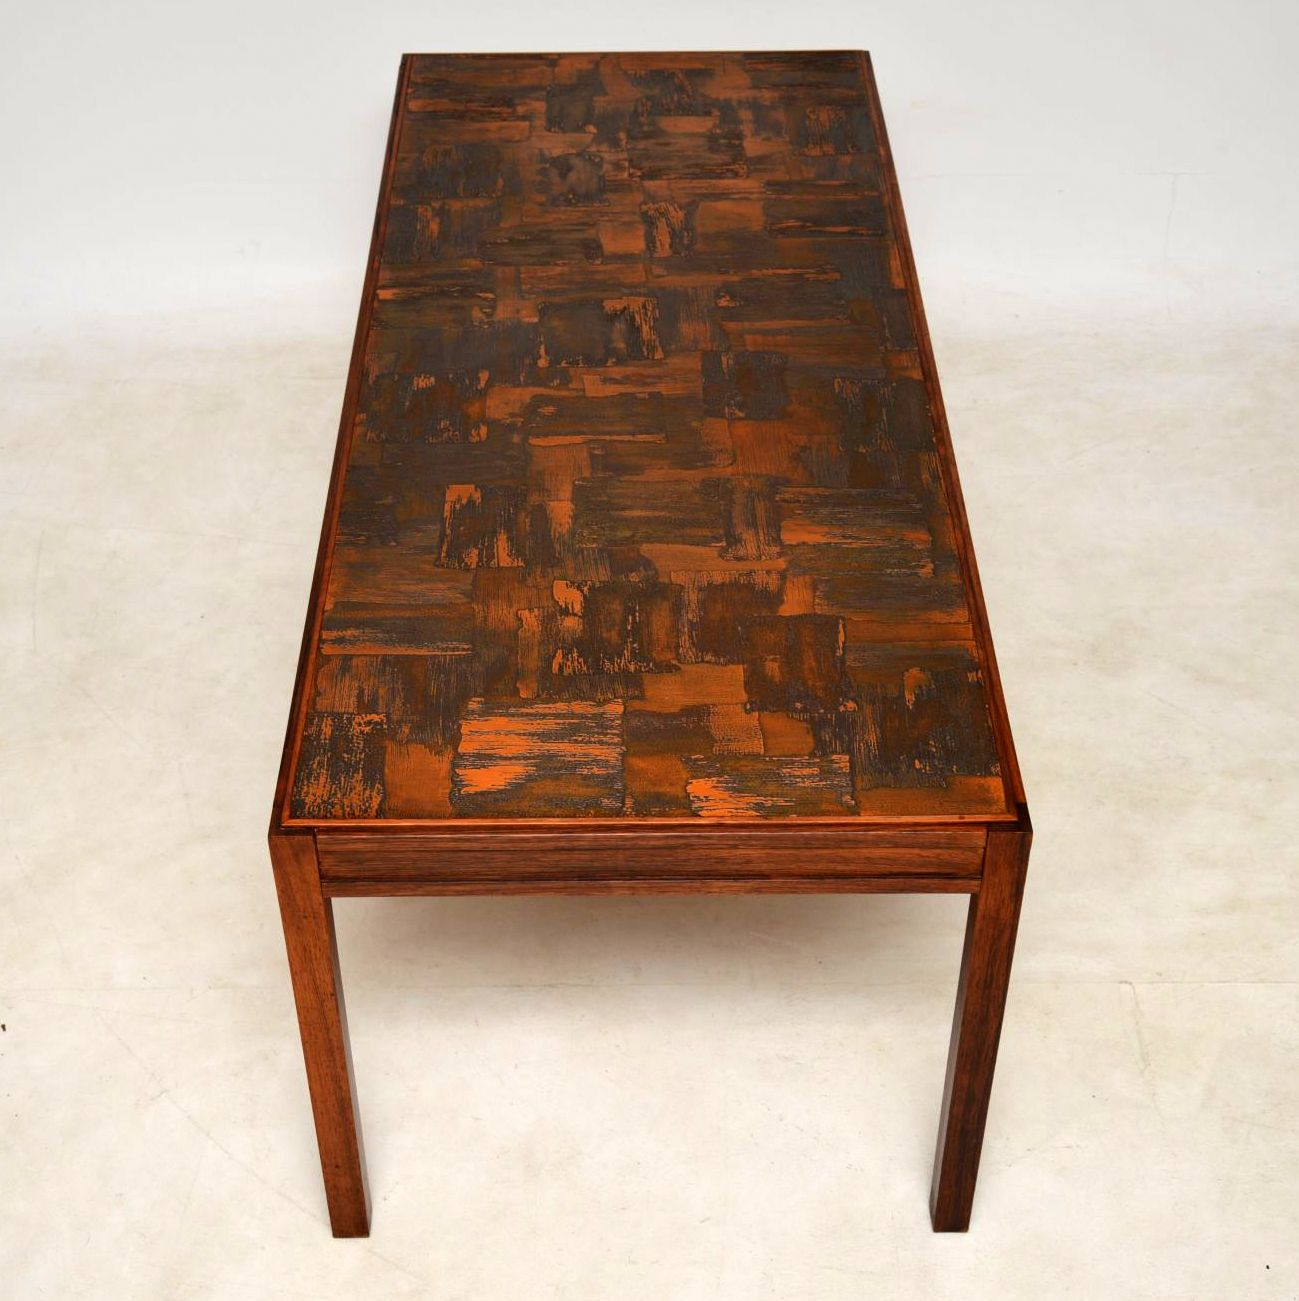 1960's Vintage Danish Wood & Copper Coffee Table